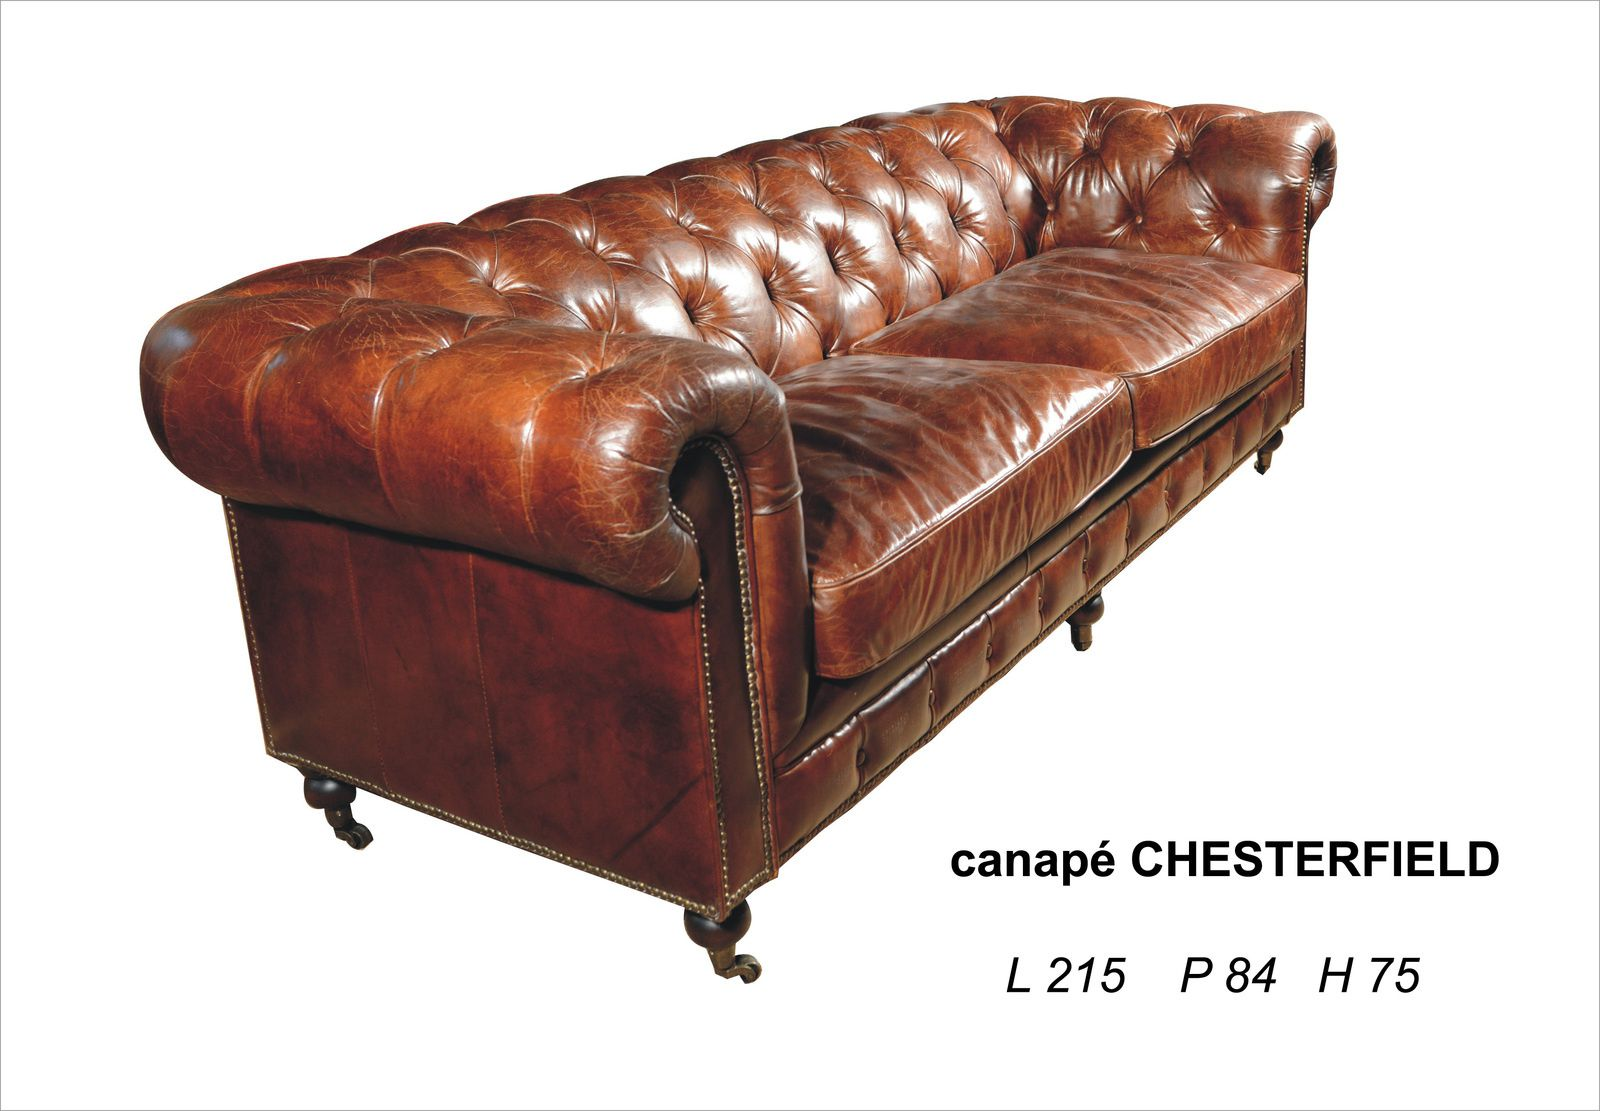 nouveau canap chesterfield 3 places convertibles espaceadesign. Black Bedroom Furniture Sets. Home Design Ideas